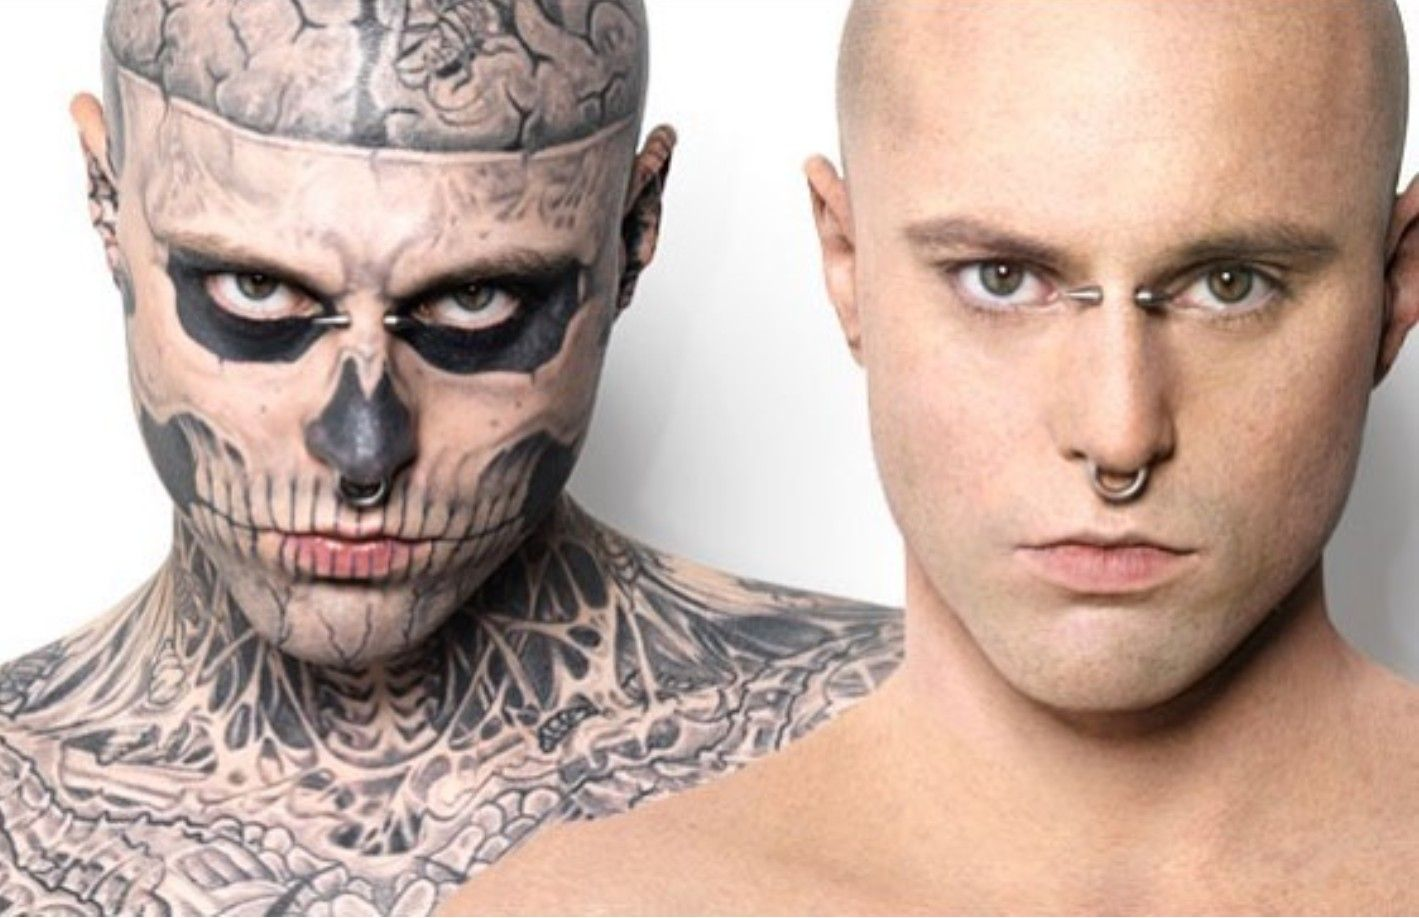 2018 Rick Genest 32 Model Actor And Artist Otherwise Known As Zombie Boy Because Of His Striking Tattooed Rick Genest Tattoo Makeup Coverup Boy Tattoos